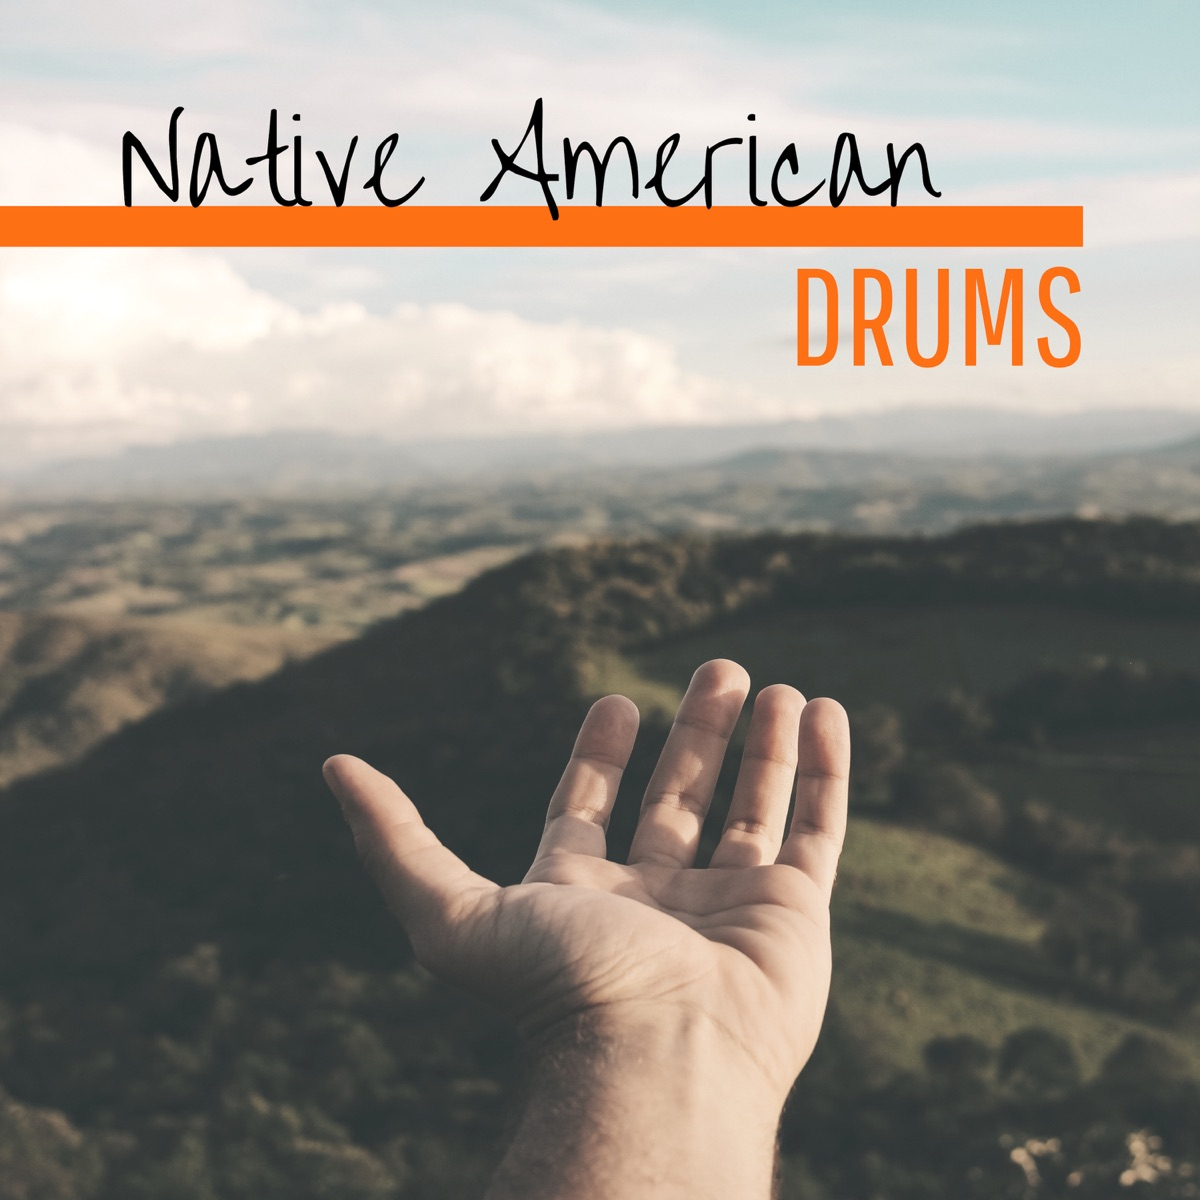 Native American Drums - Constant Drumming for Spiritual Journey